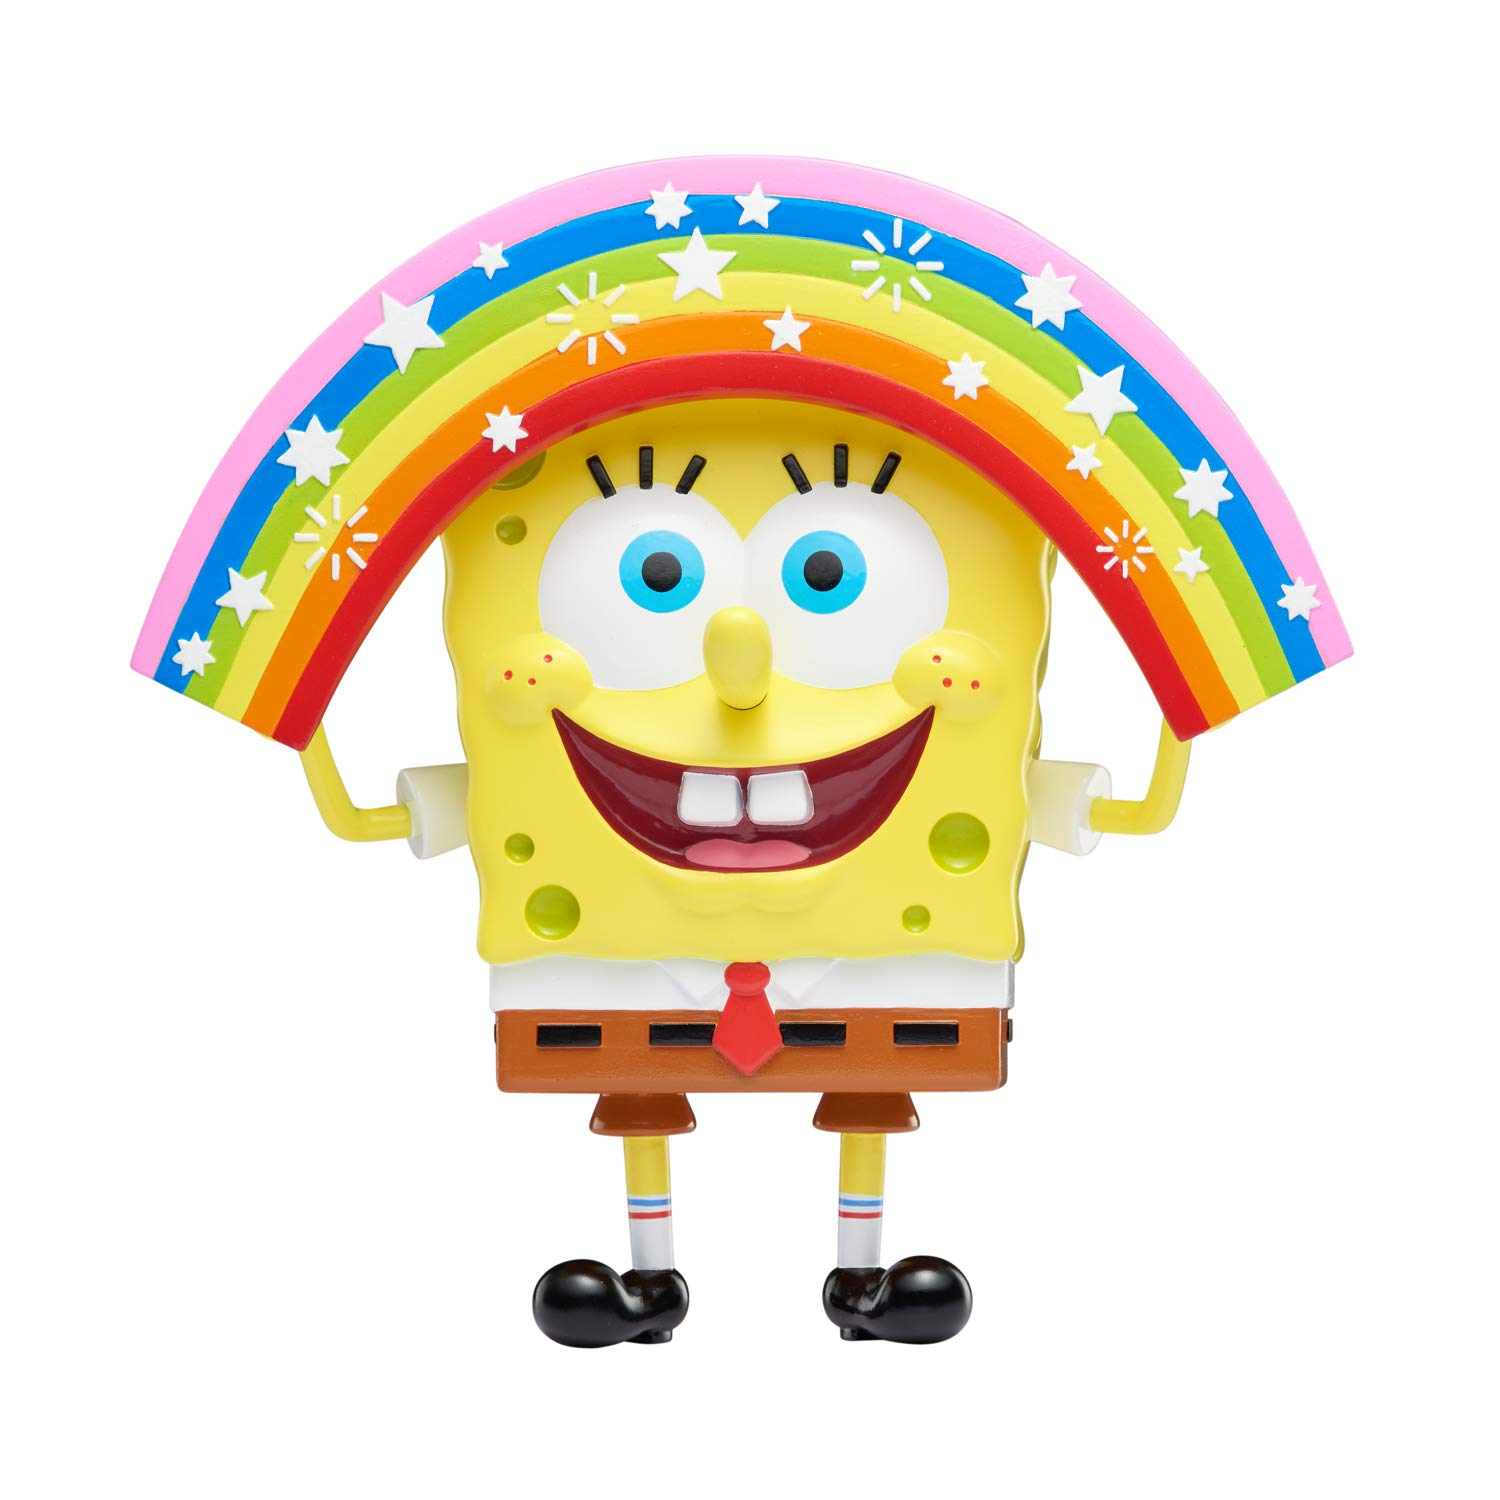 Amazon com spongebob squarepants masterpiece memes 8 collectible vinyl figure imaginaaation spongebob toys games